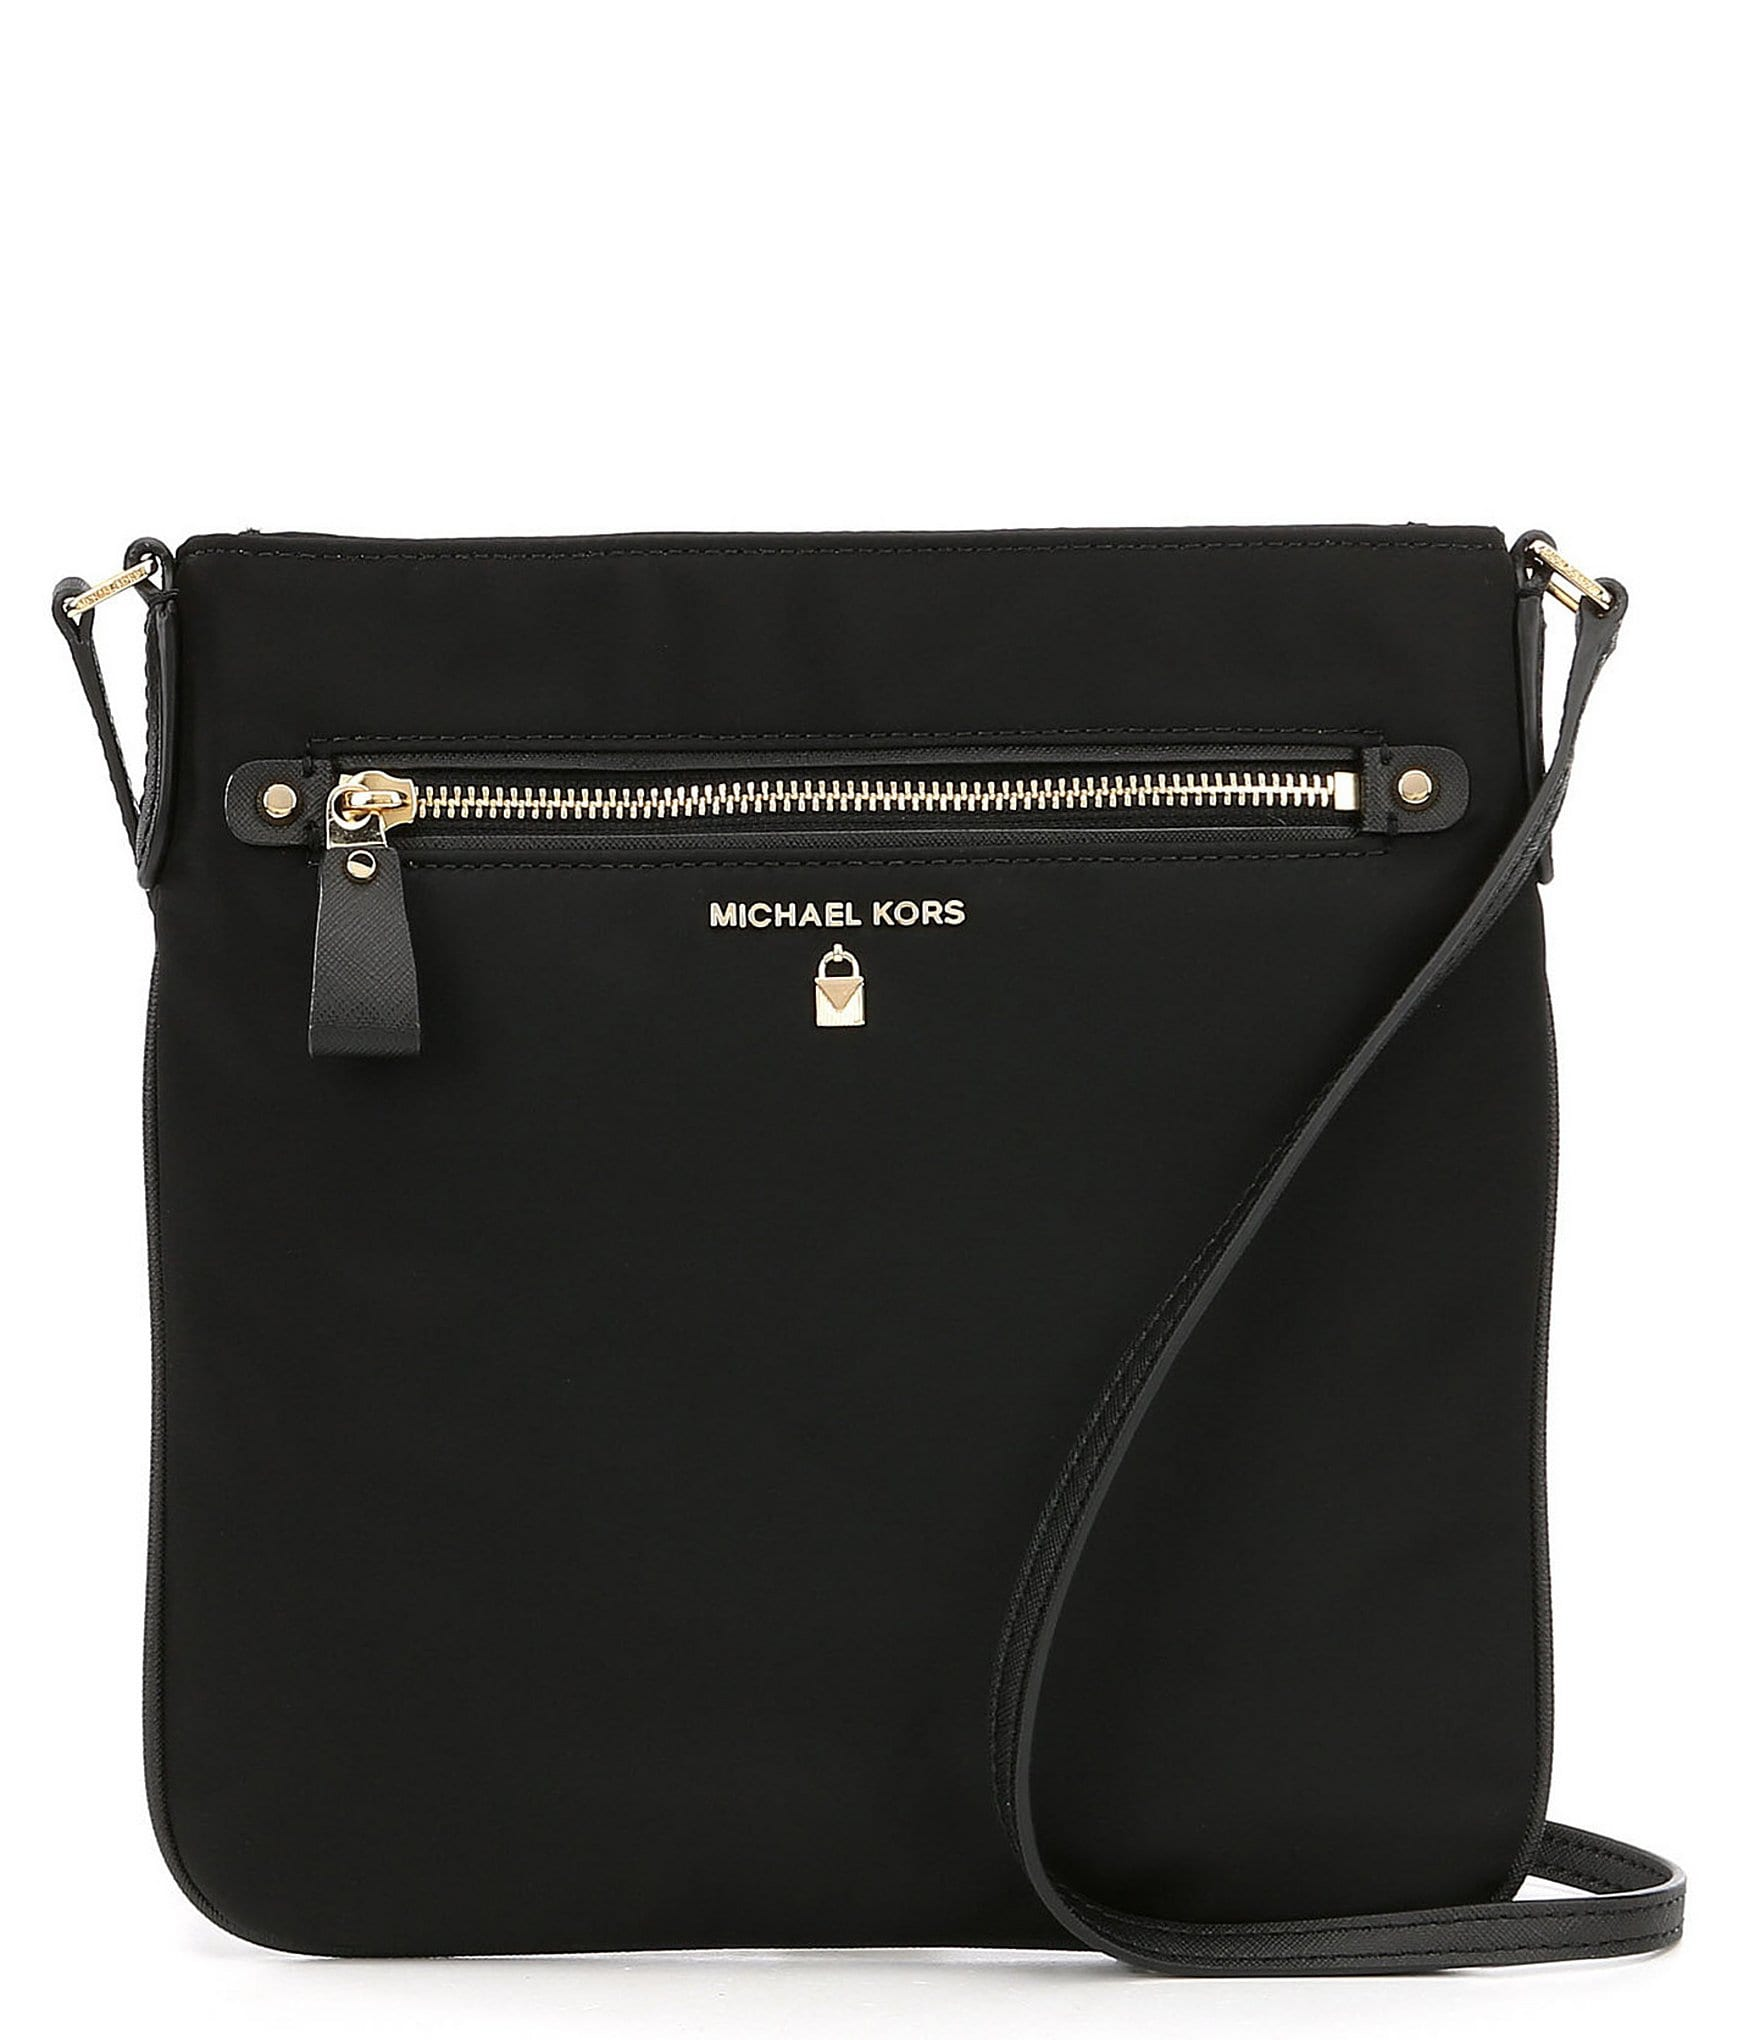 6c193aee8a39 Michael Kors Bags On Sale Kelsey | Stanford Center for Opportunity ...